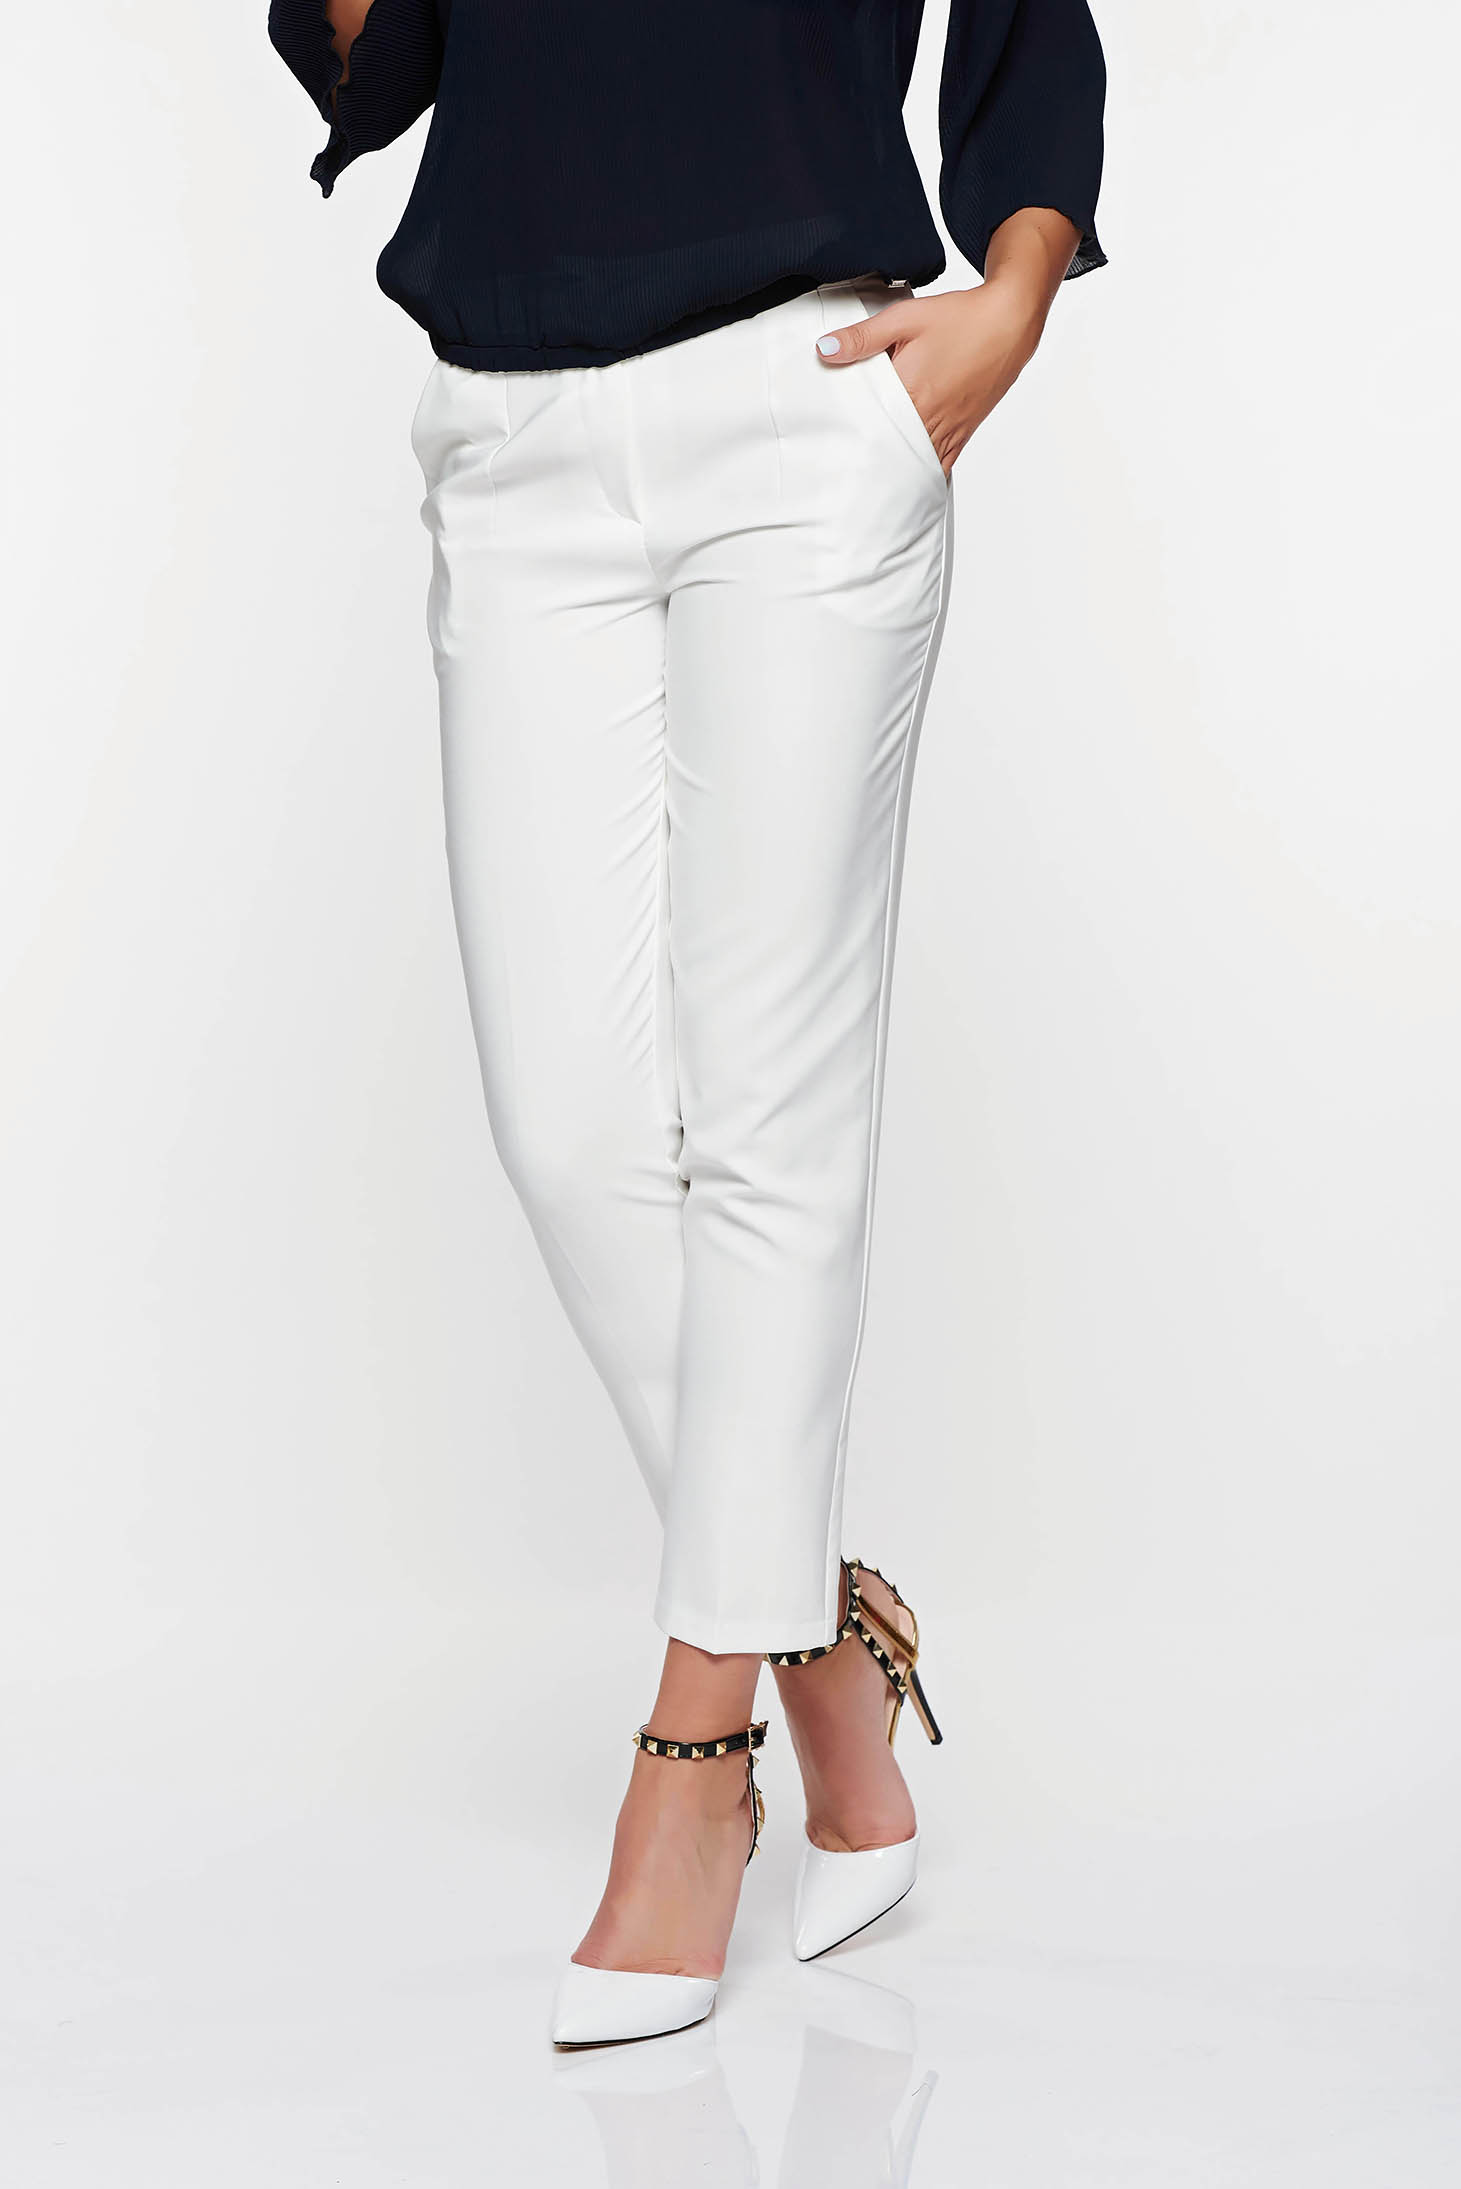 Artista white trousers office with pockets with medium waist slightly elastic fabric